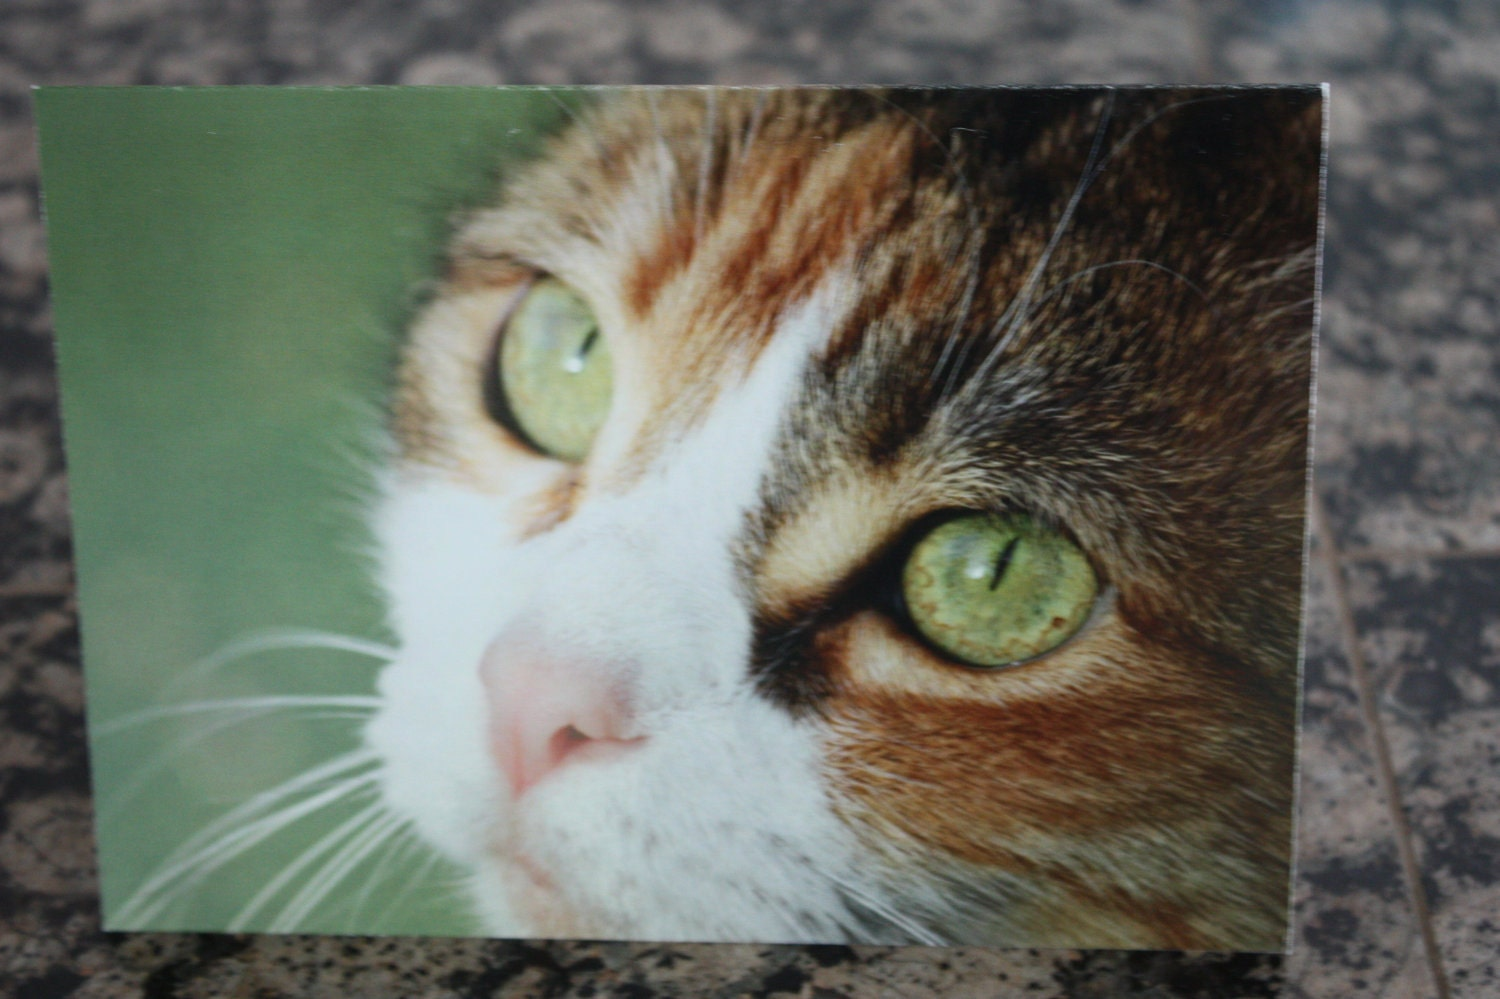 For Japan relief -- CALICO CAT blank greeting card -- 100% profits to Japan animal rescue